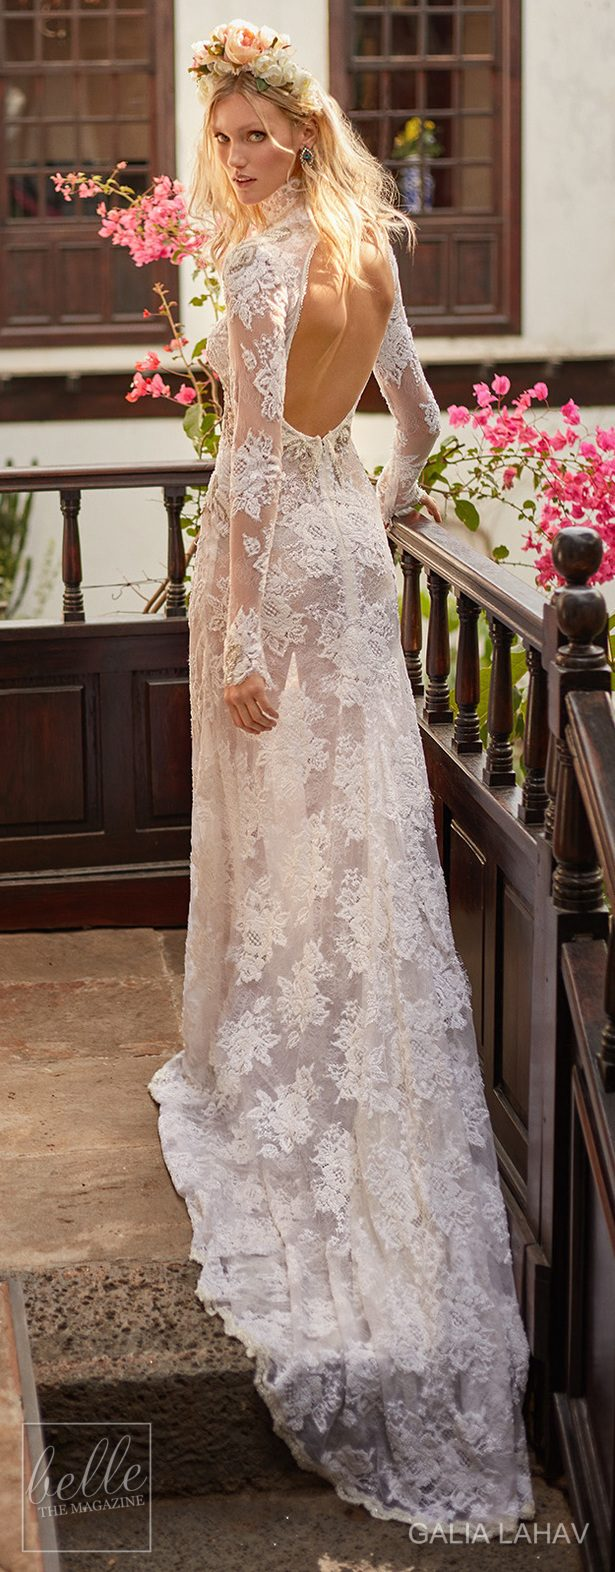 30 Bohemian Wedding Dresses That Will Take Your Breath Away